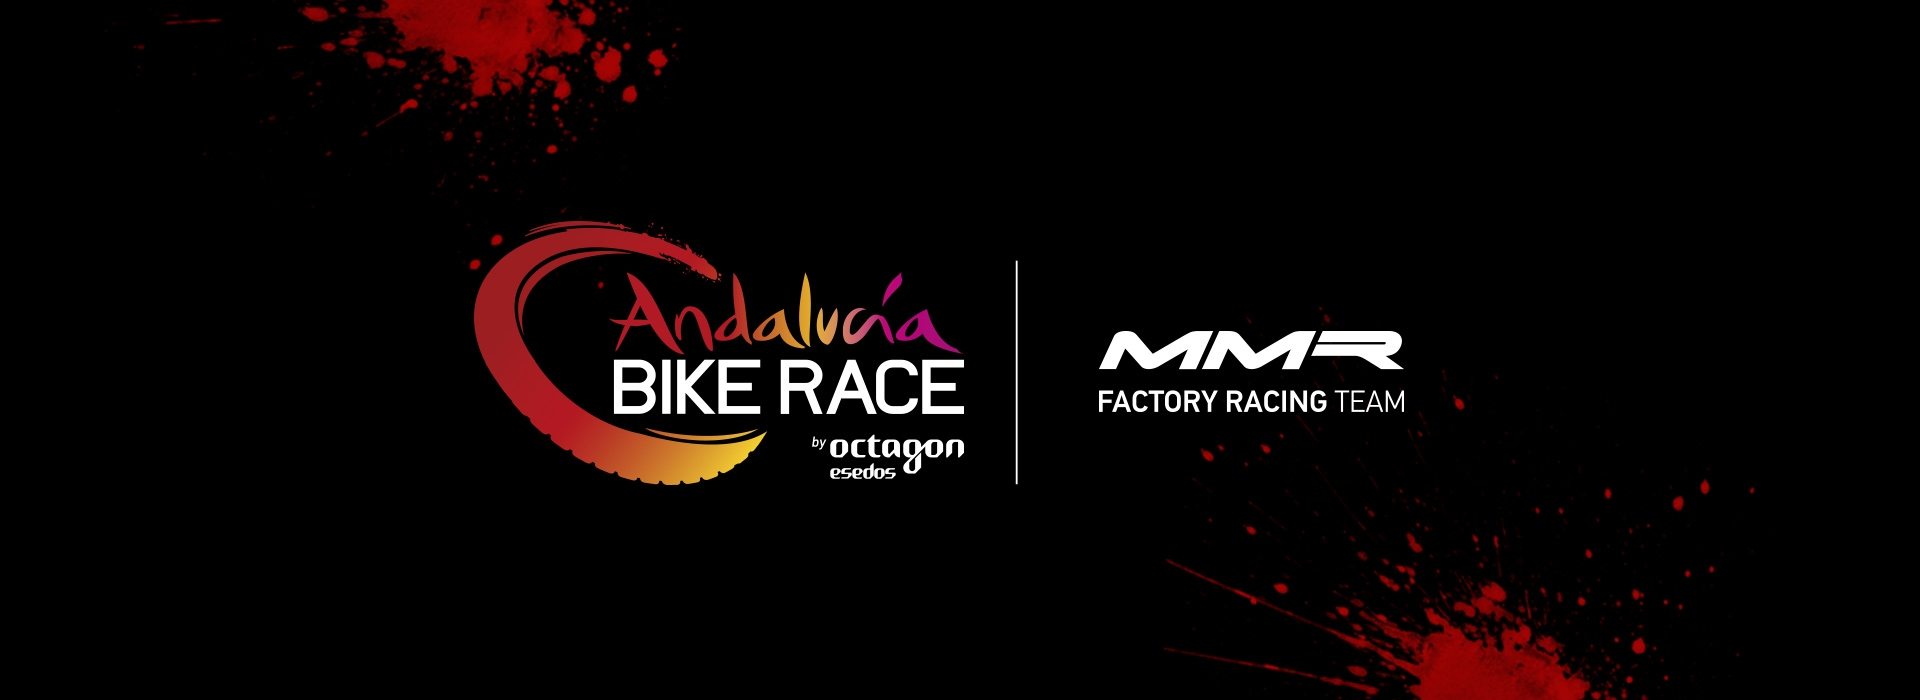 MMR Factory Racing will race with its two Spanish Champions